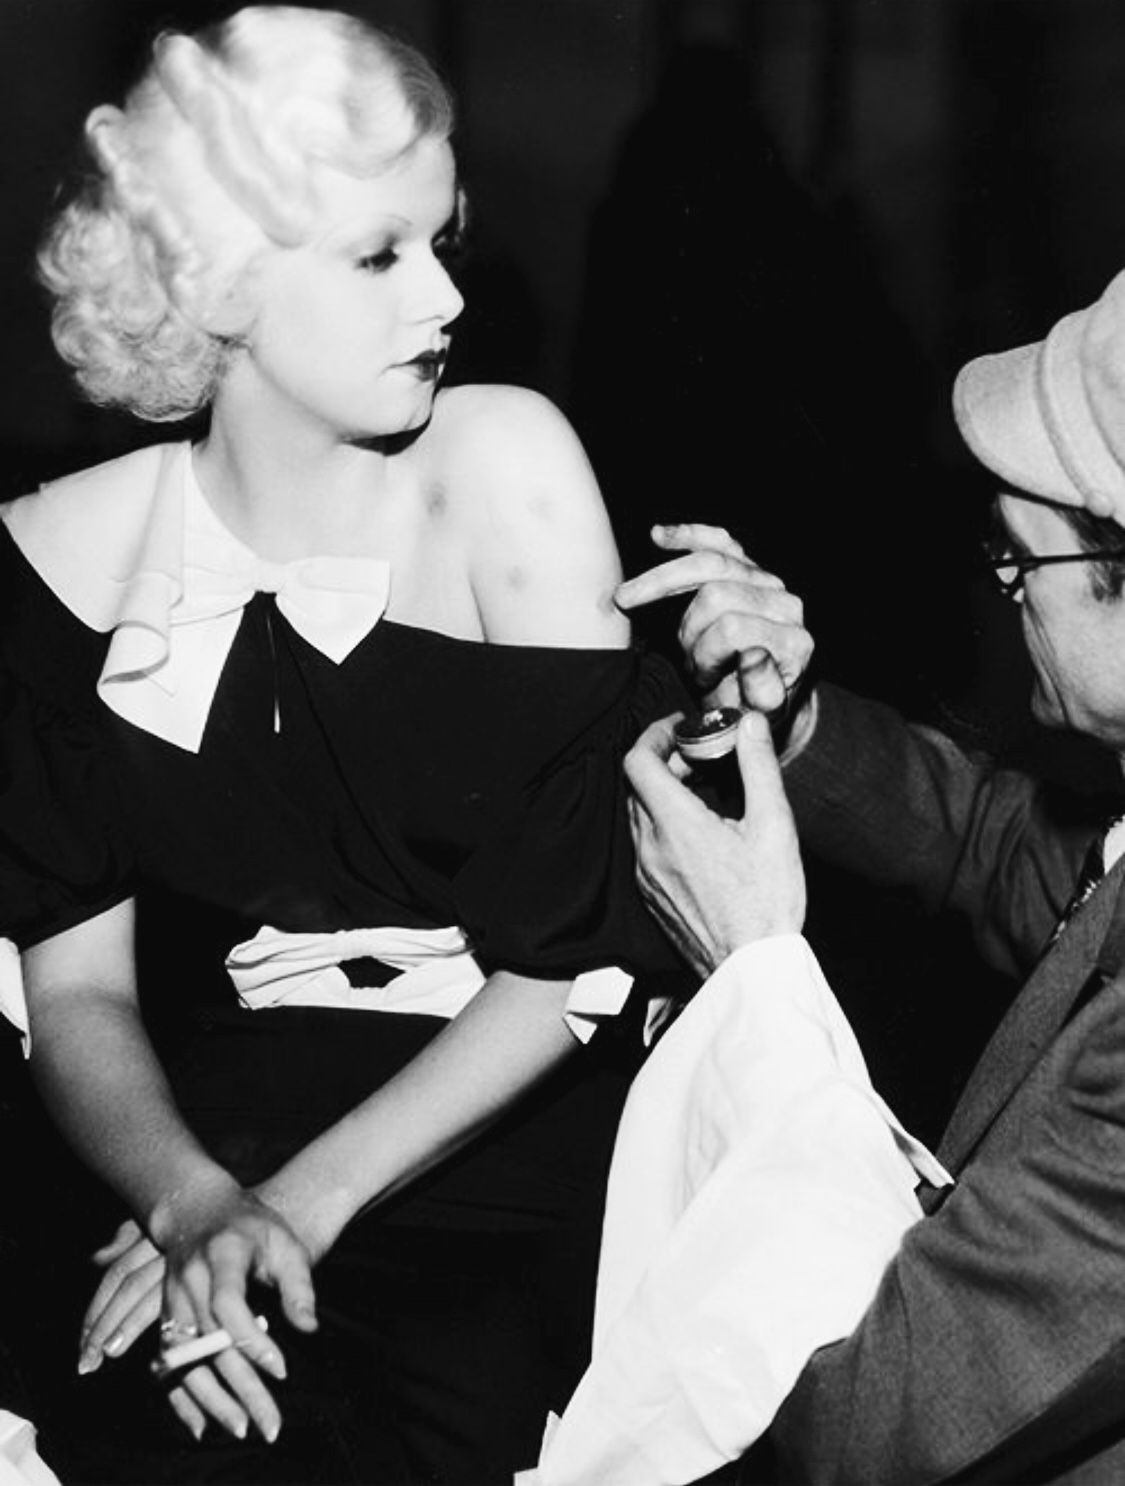 The makeup artist applying bruises to Jean Harlow on the